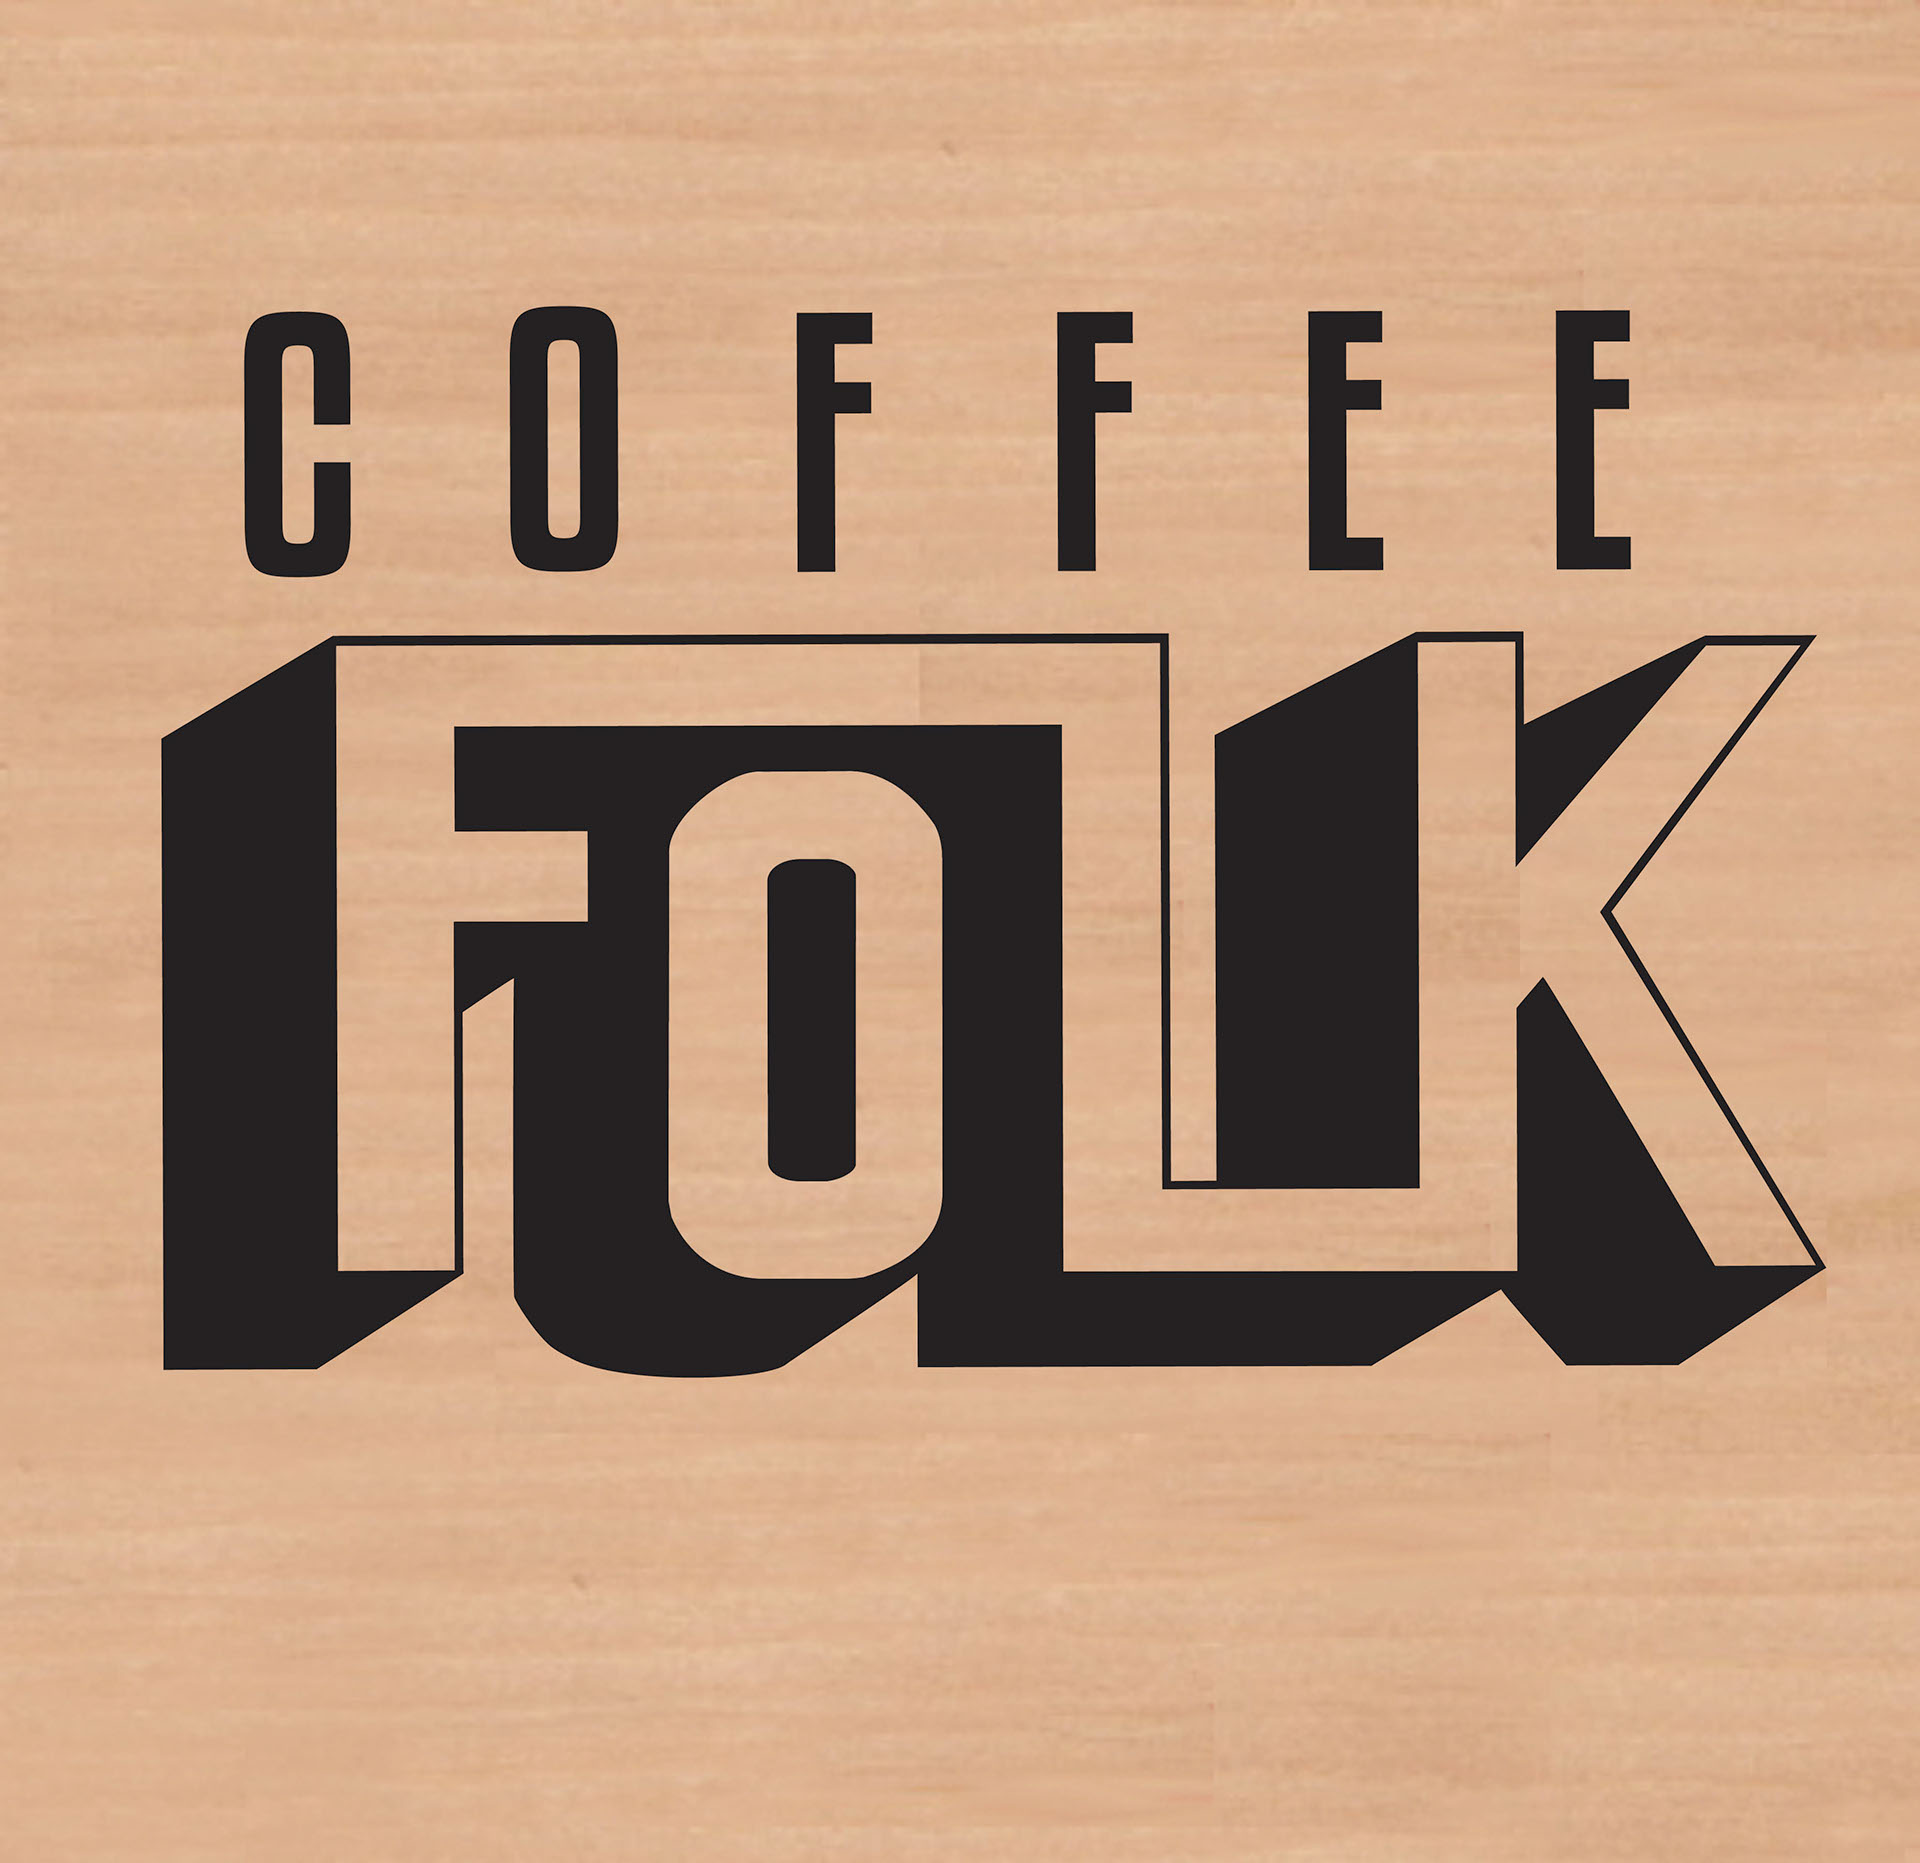 CoffeeFolk_wood.jpg